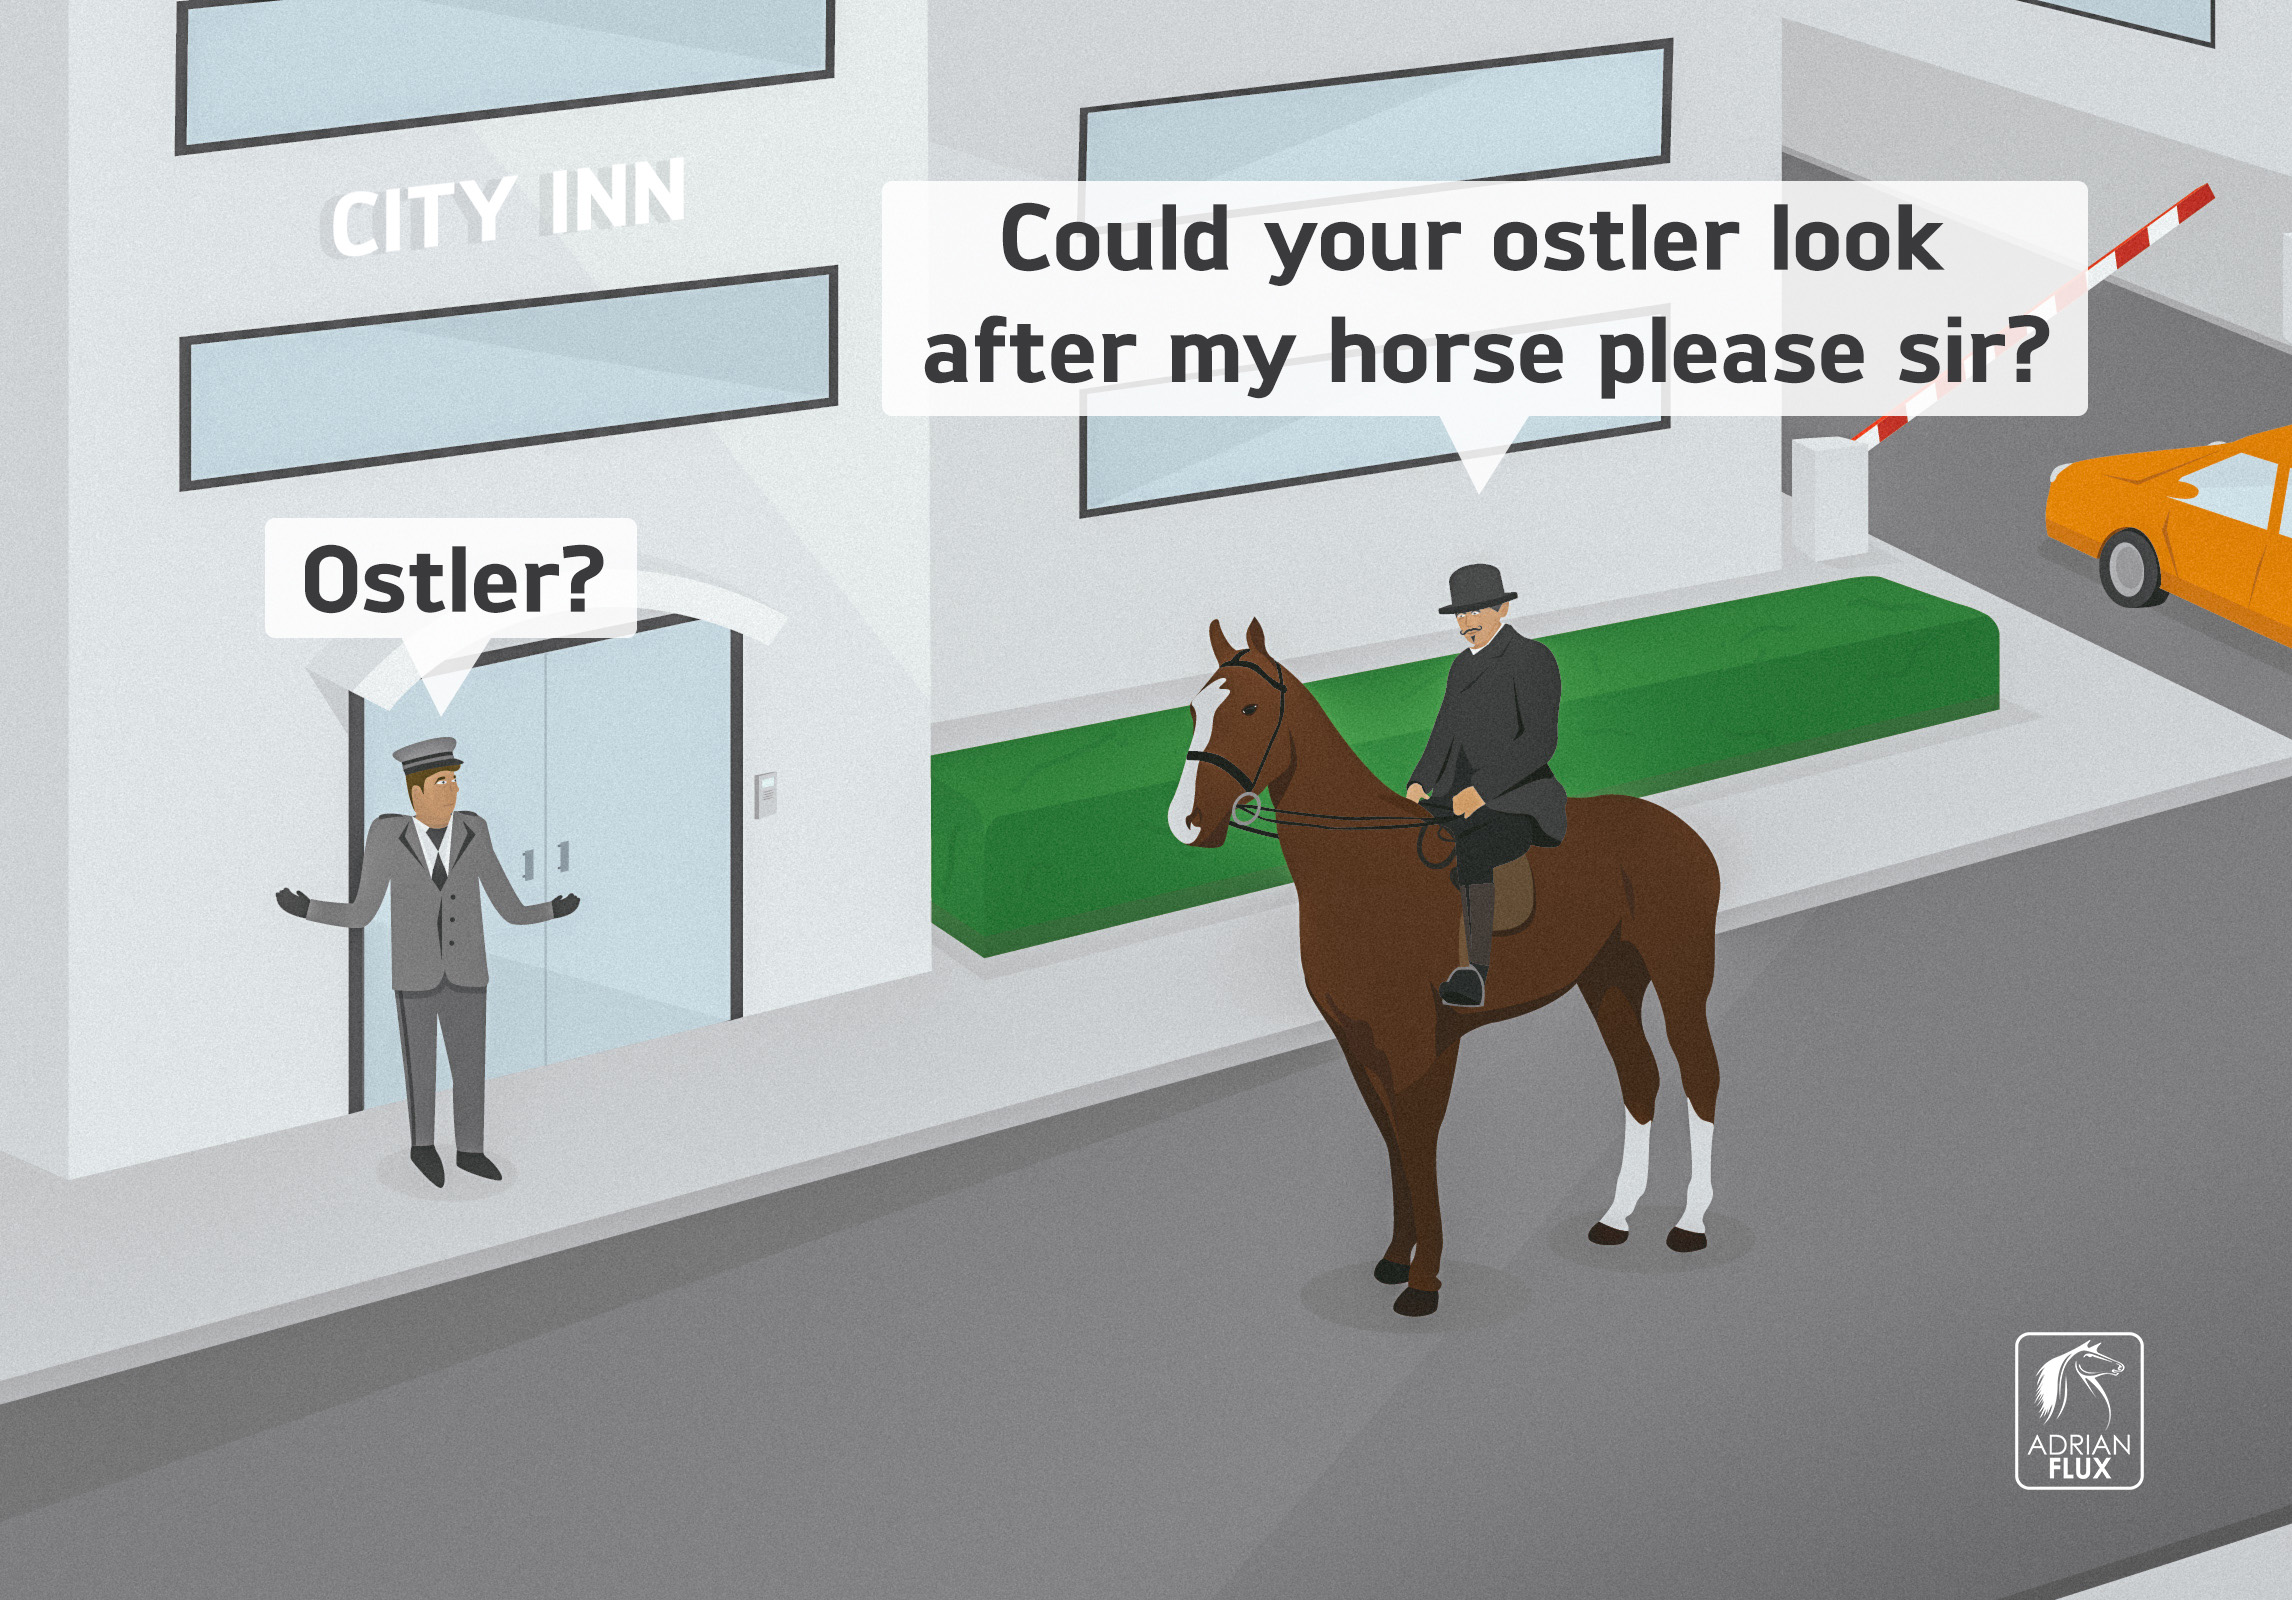 An ostler was a person who looked after your horse when visiting an inn